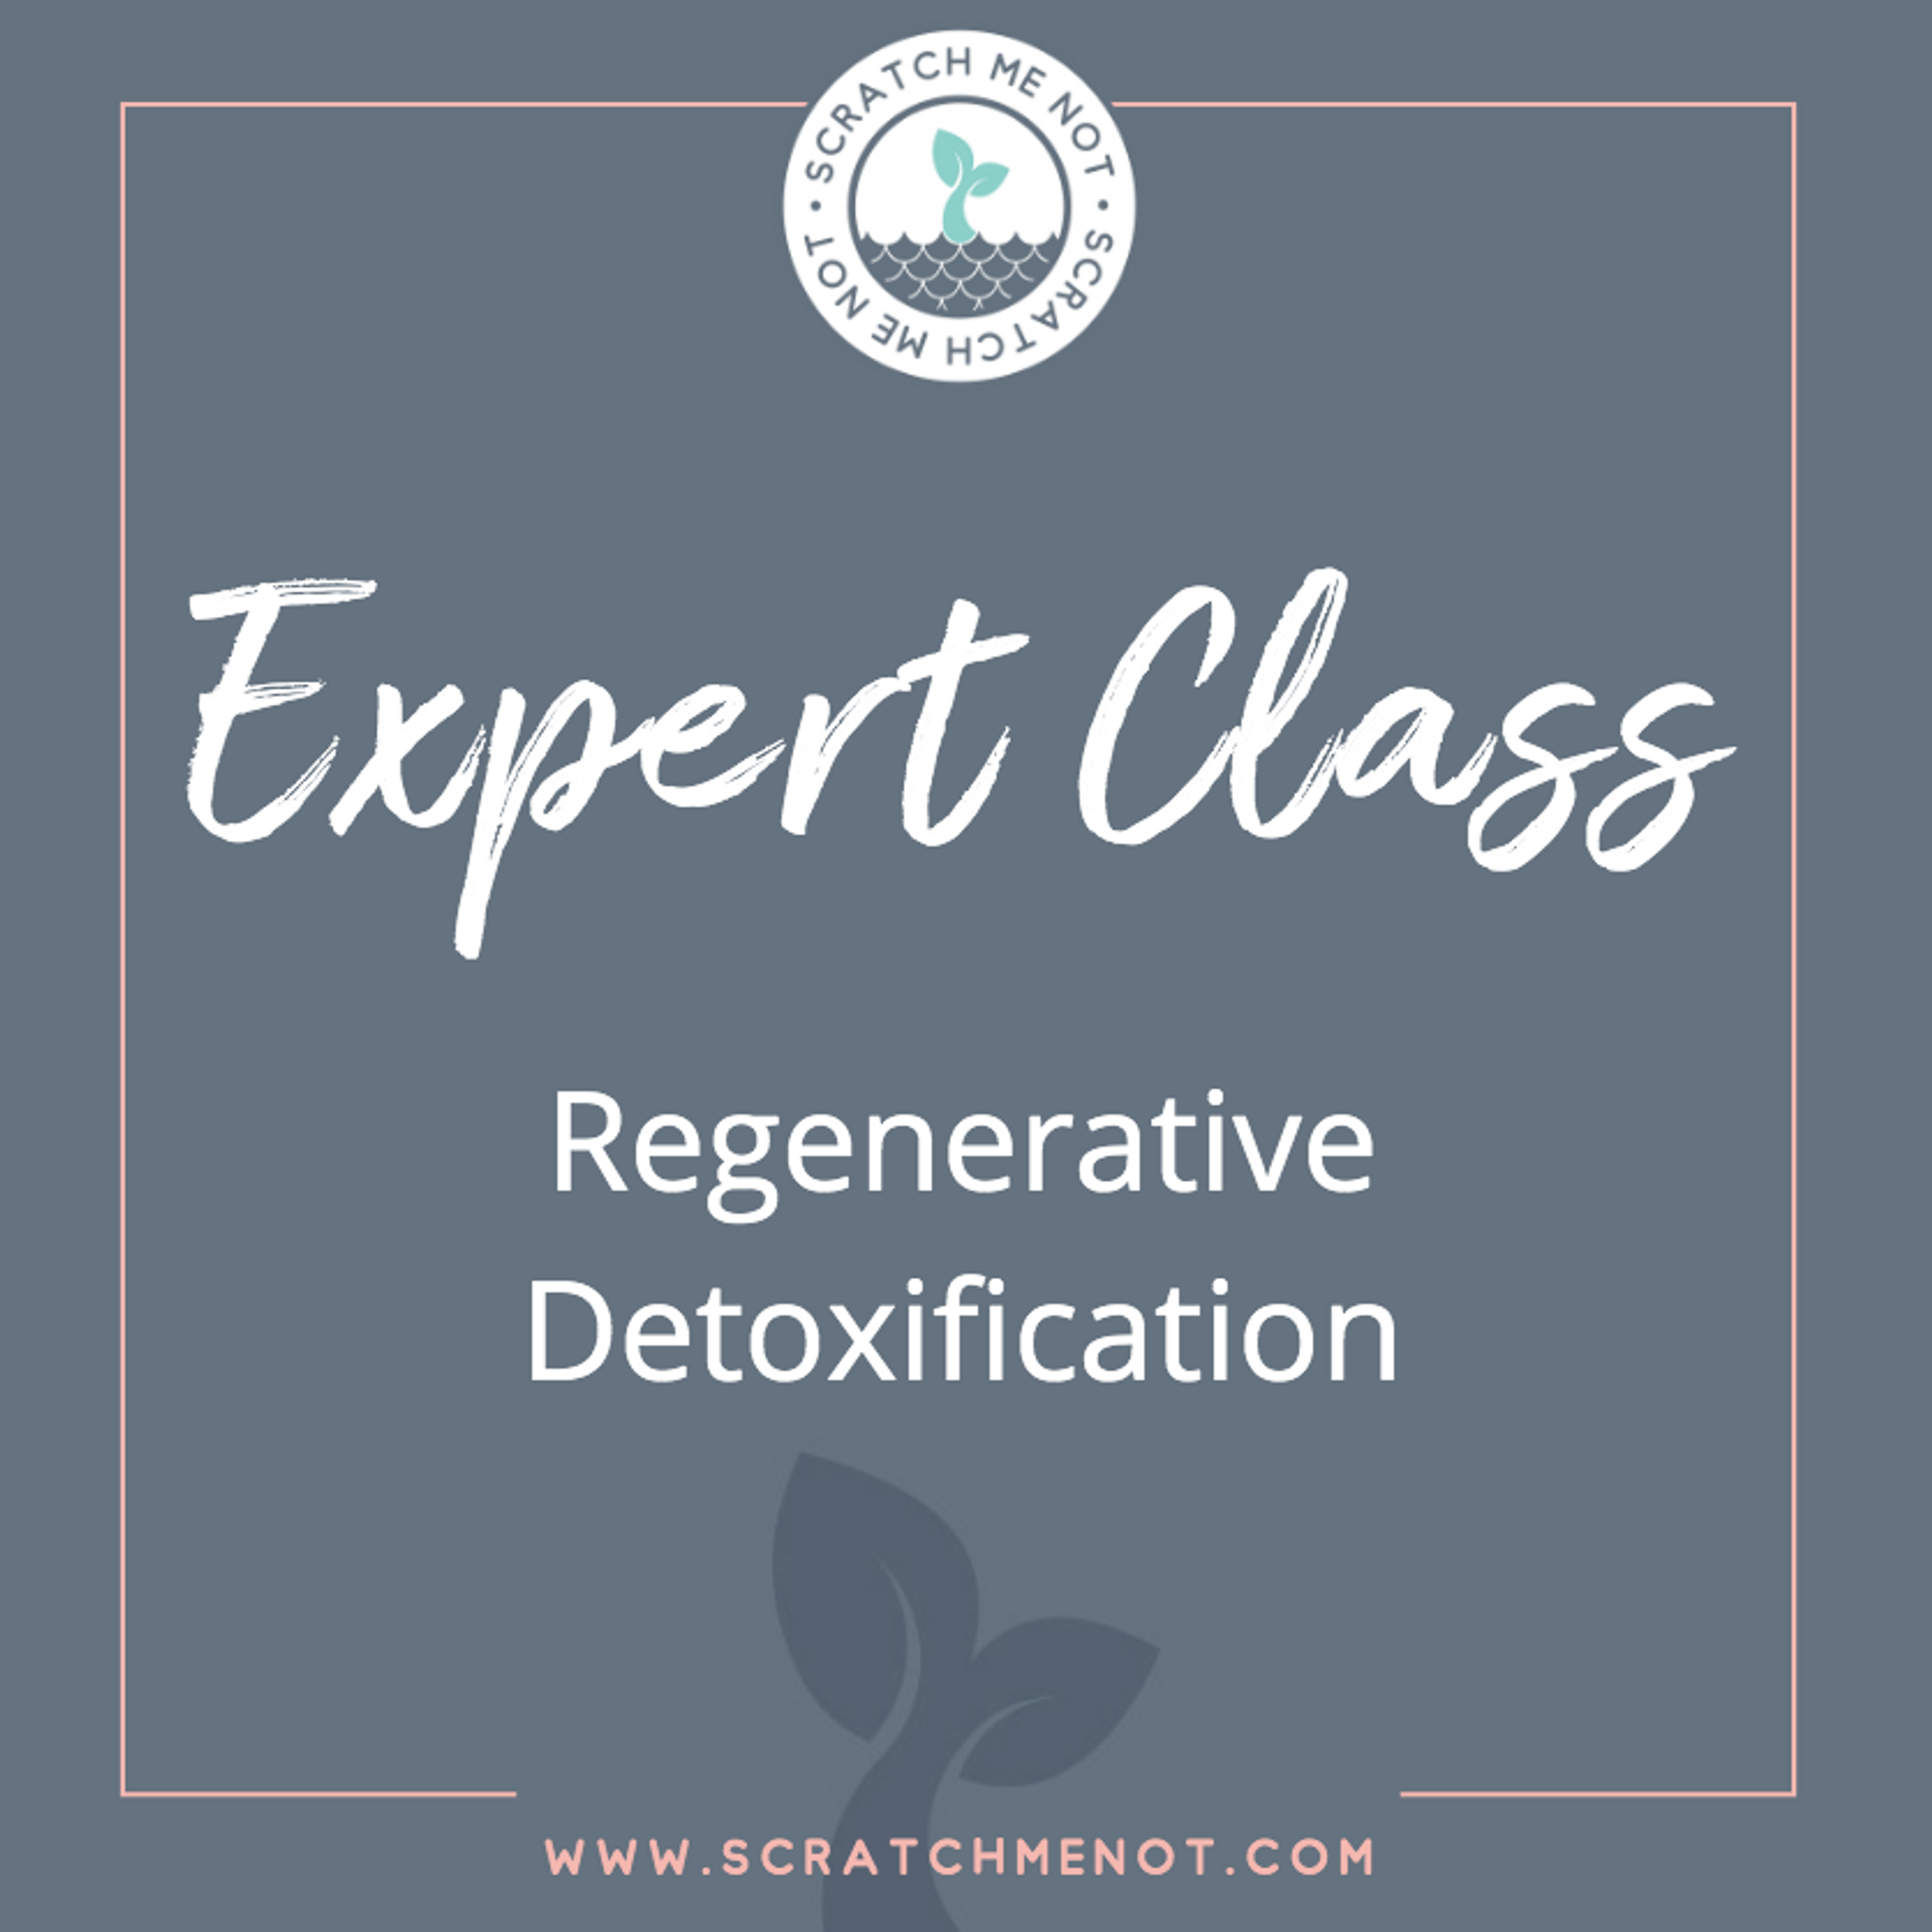 Regenerative Detoxification - How to start and how do you know it's working